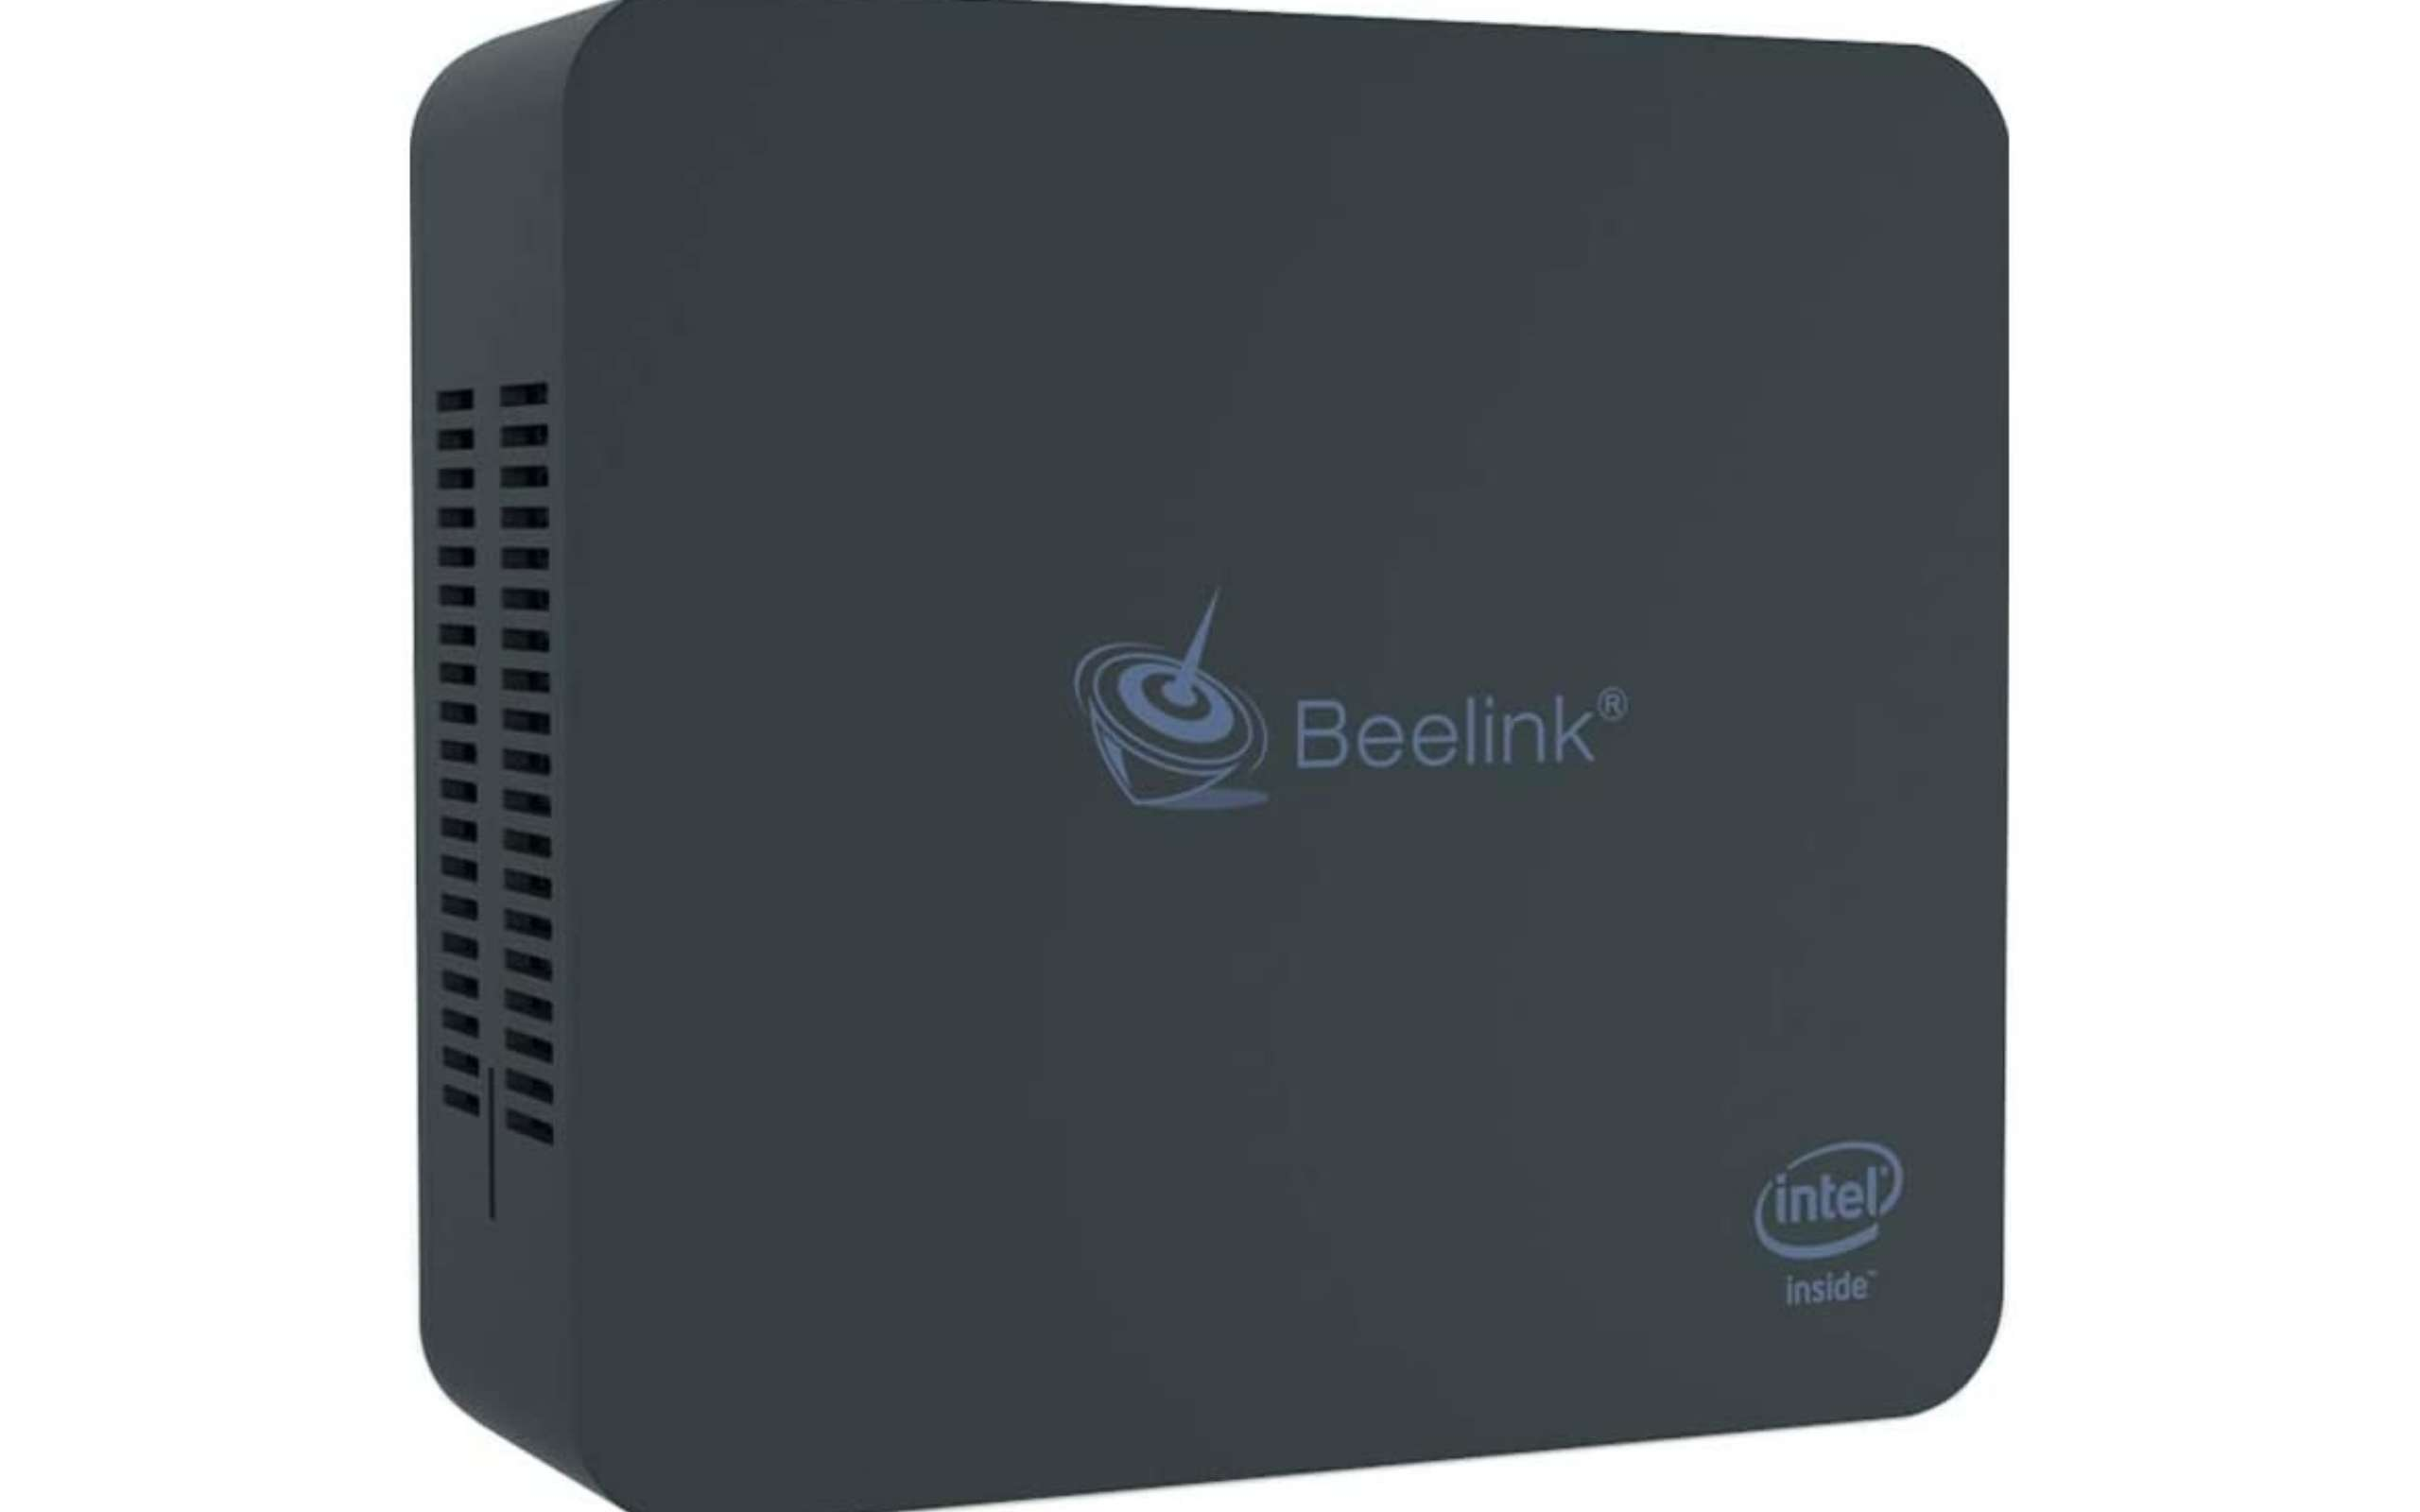 Beelink U55 Mini PC with 8GB of RAM and Intel i3 on offer on Amazon